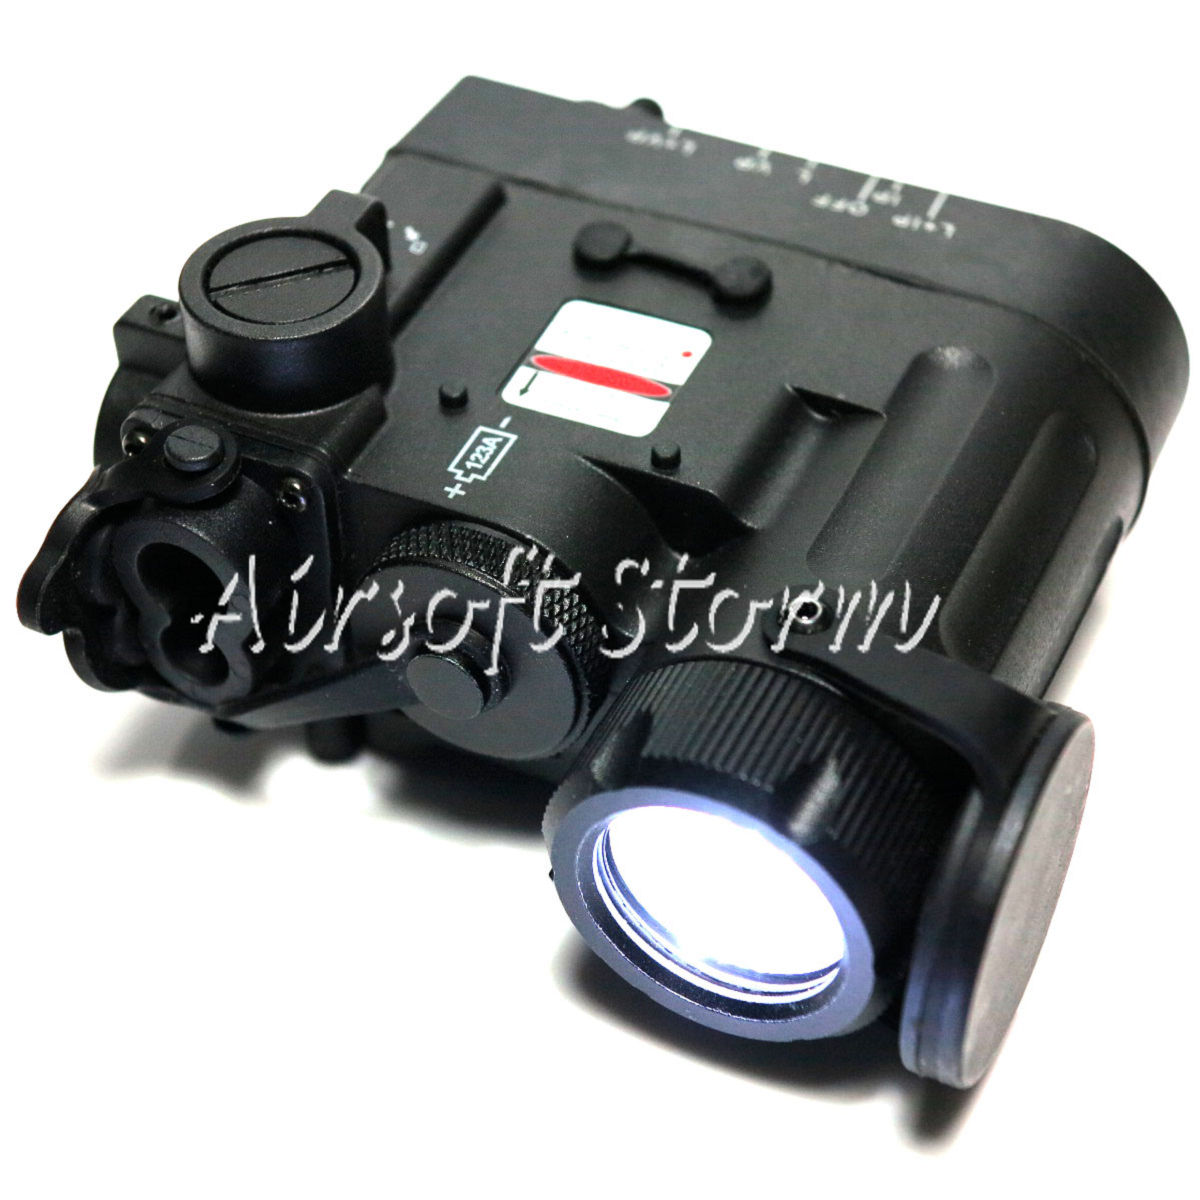 Element DBAL eMK II I-Red Flashlight and Aiming Laser Black Body EX328